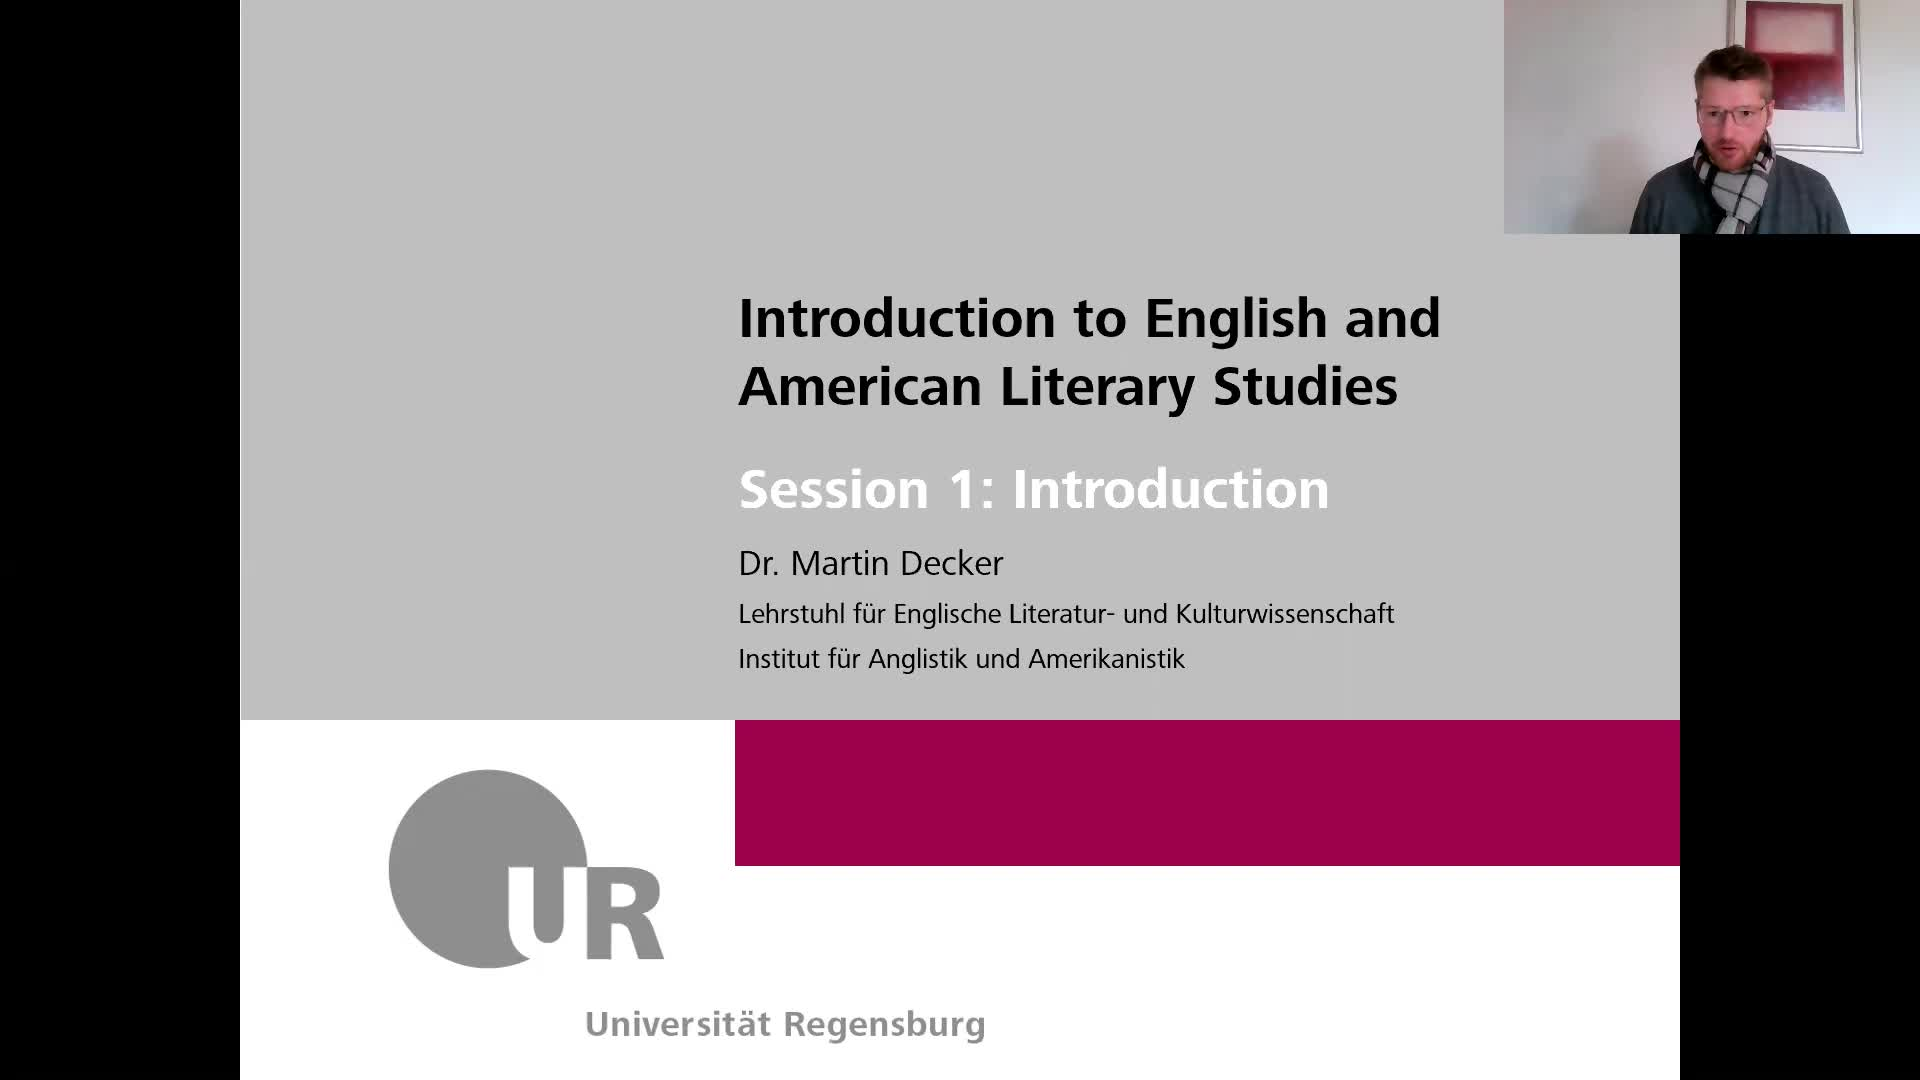 SoSe 2021 - Introduction to English and American Literary Studies - Session 1